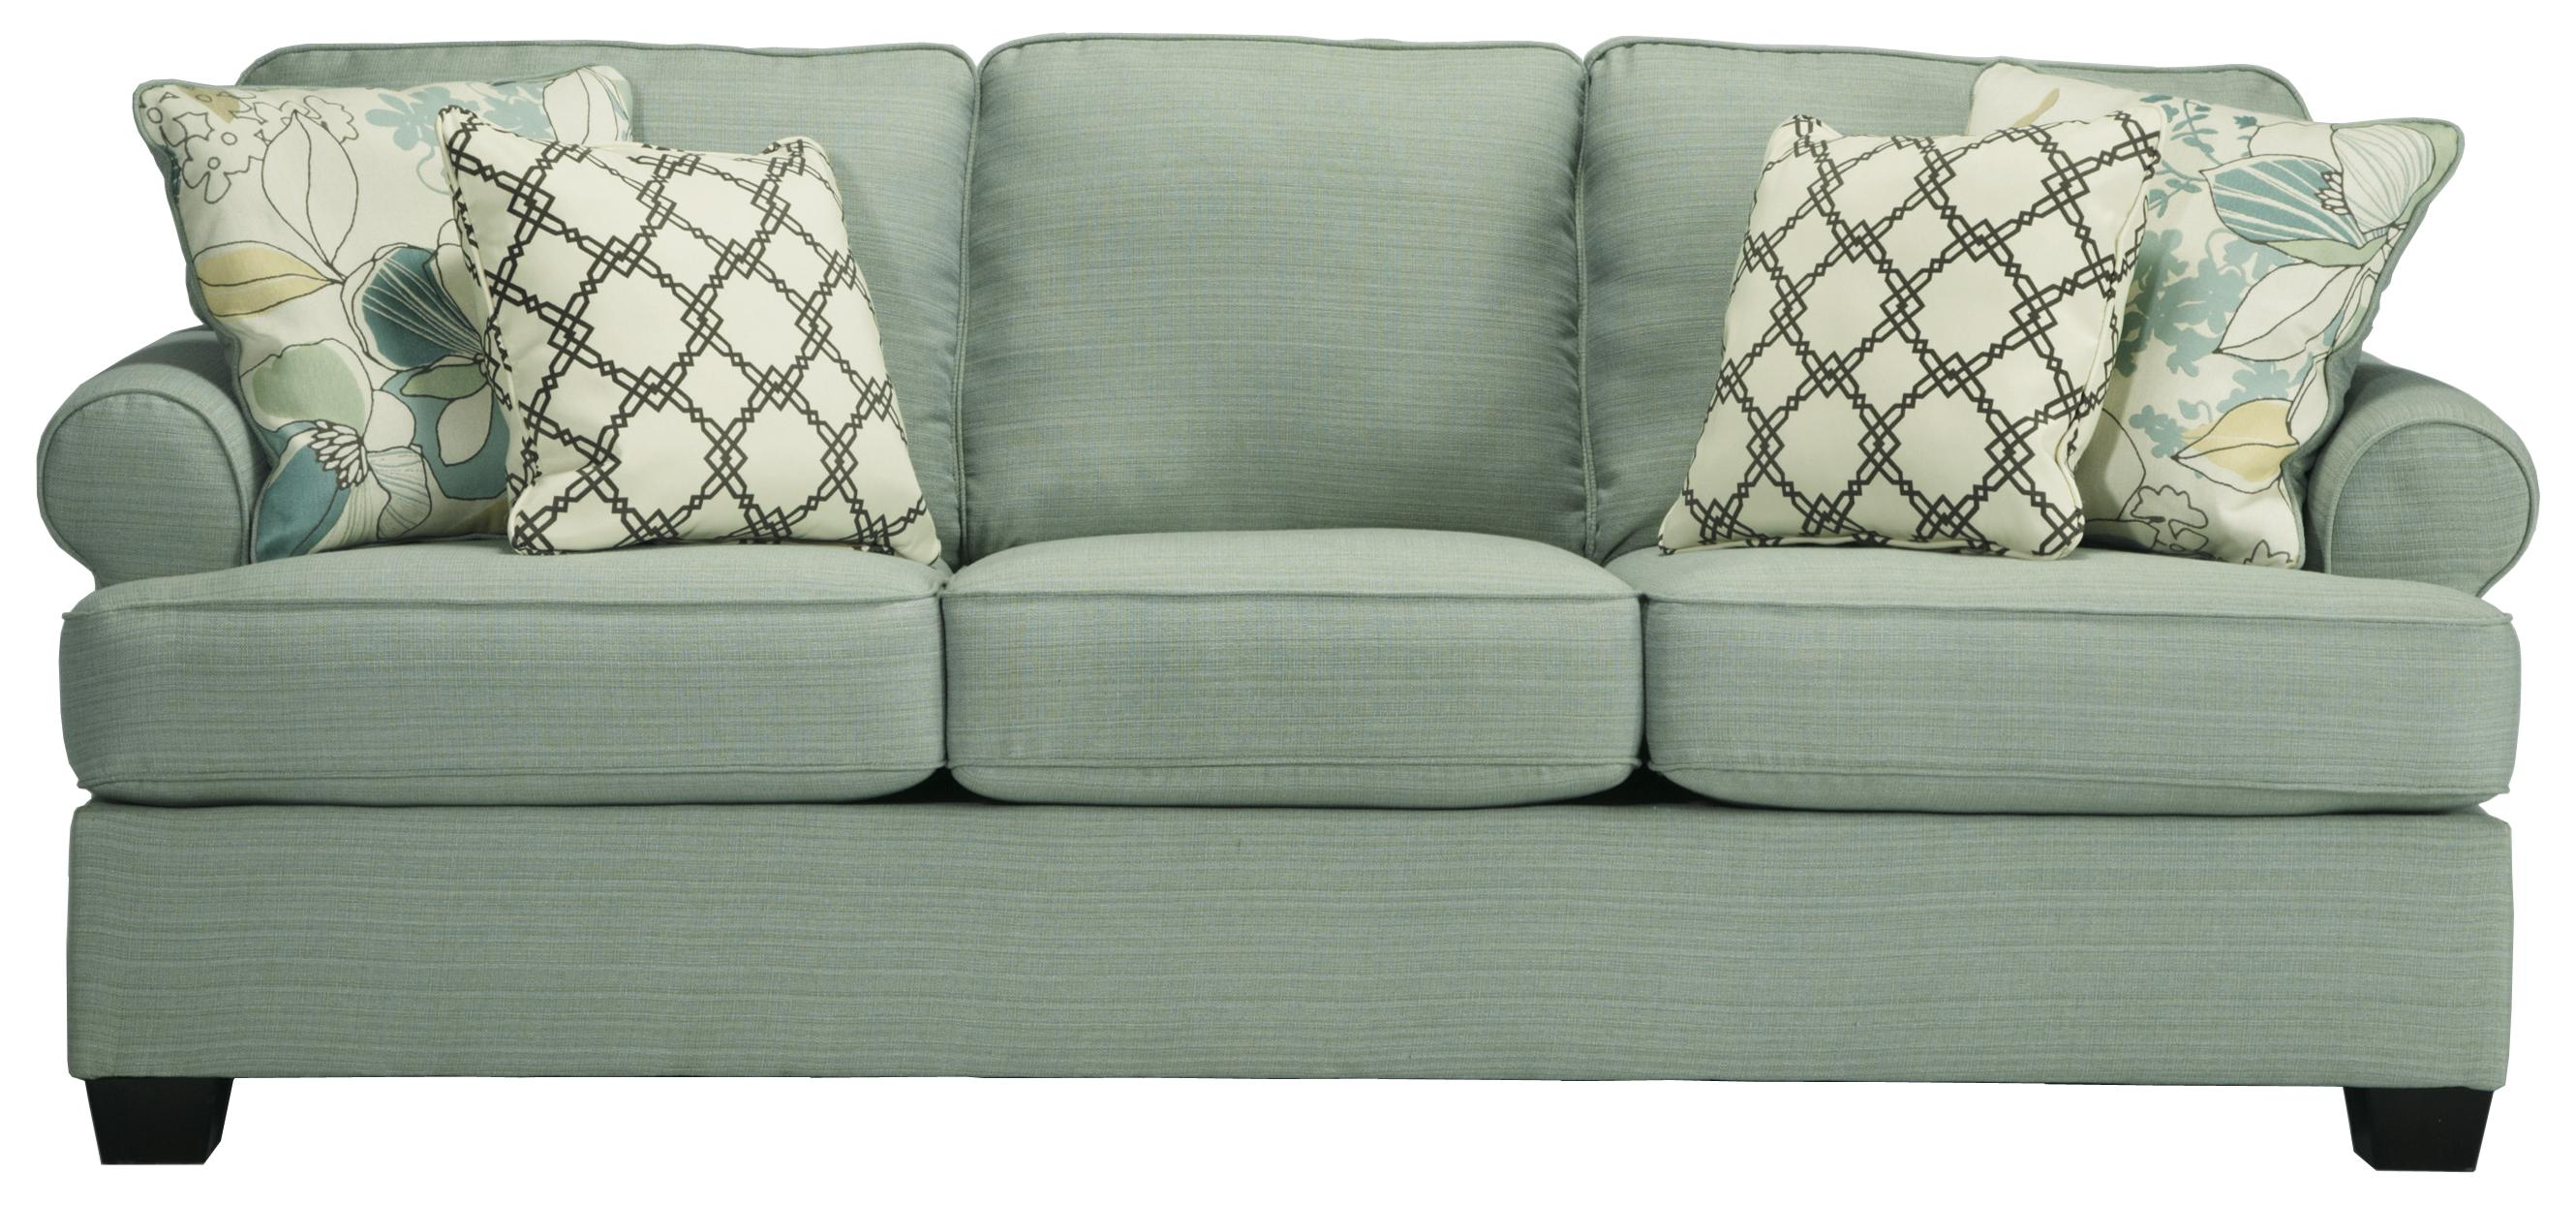 Signature Design by Ashley Daystar - Seafoam Sofa - Item Number: 2820038